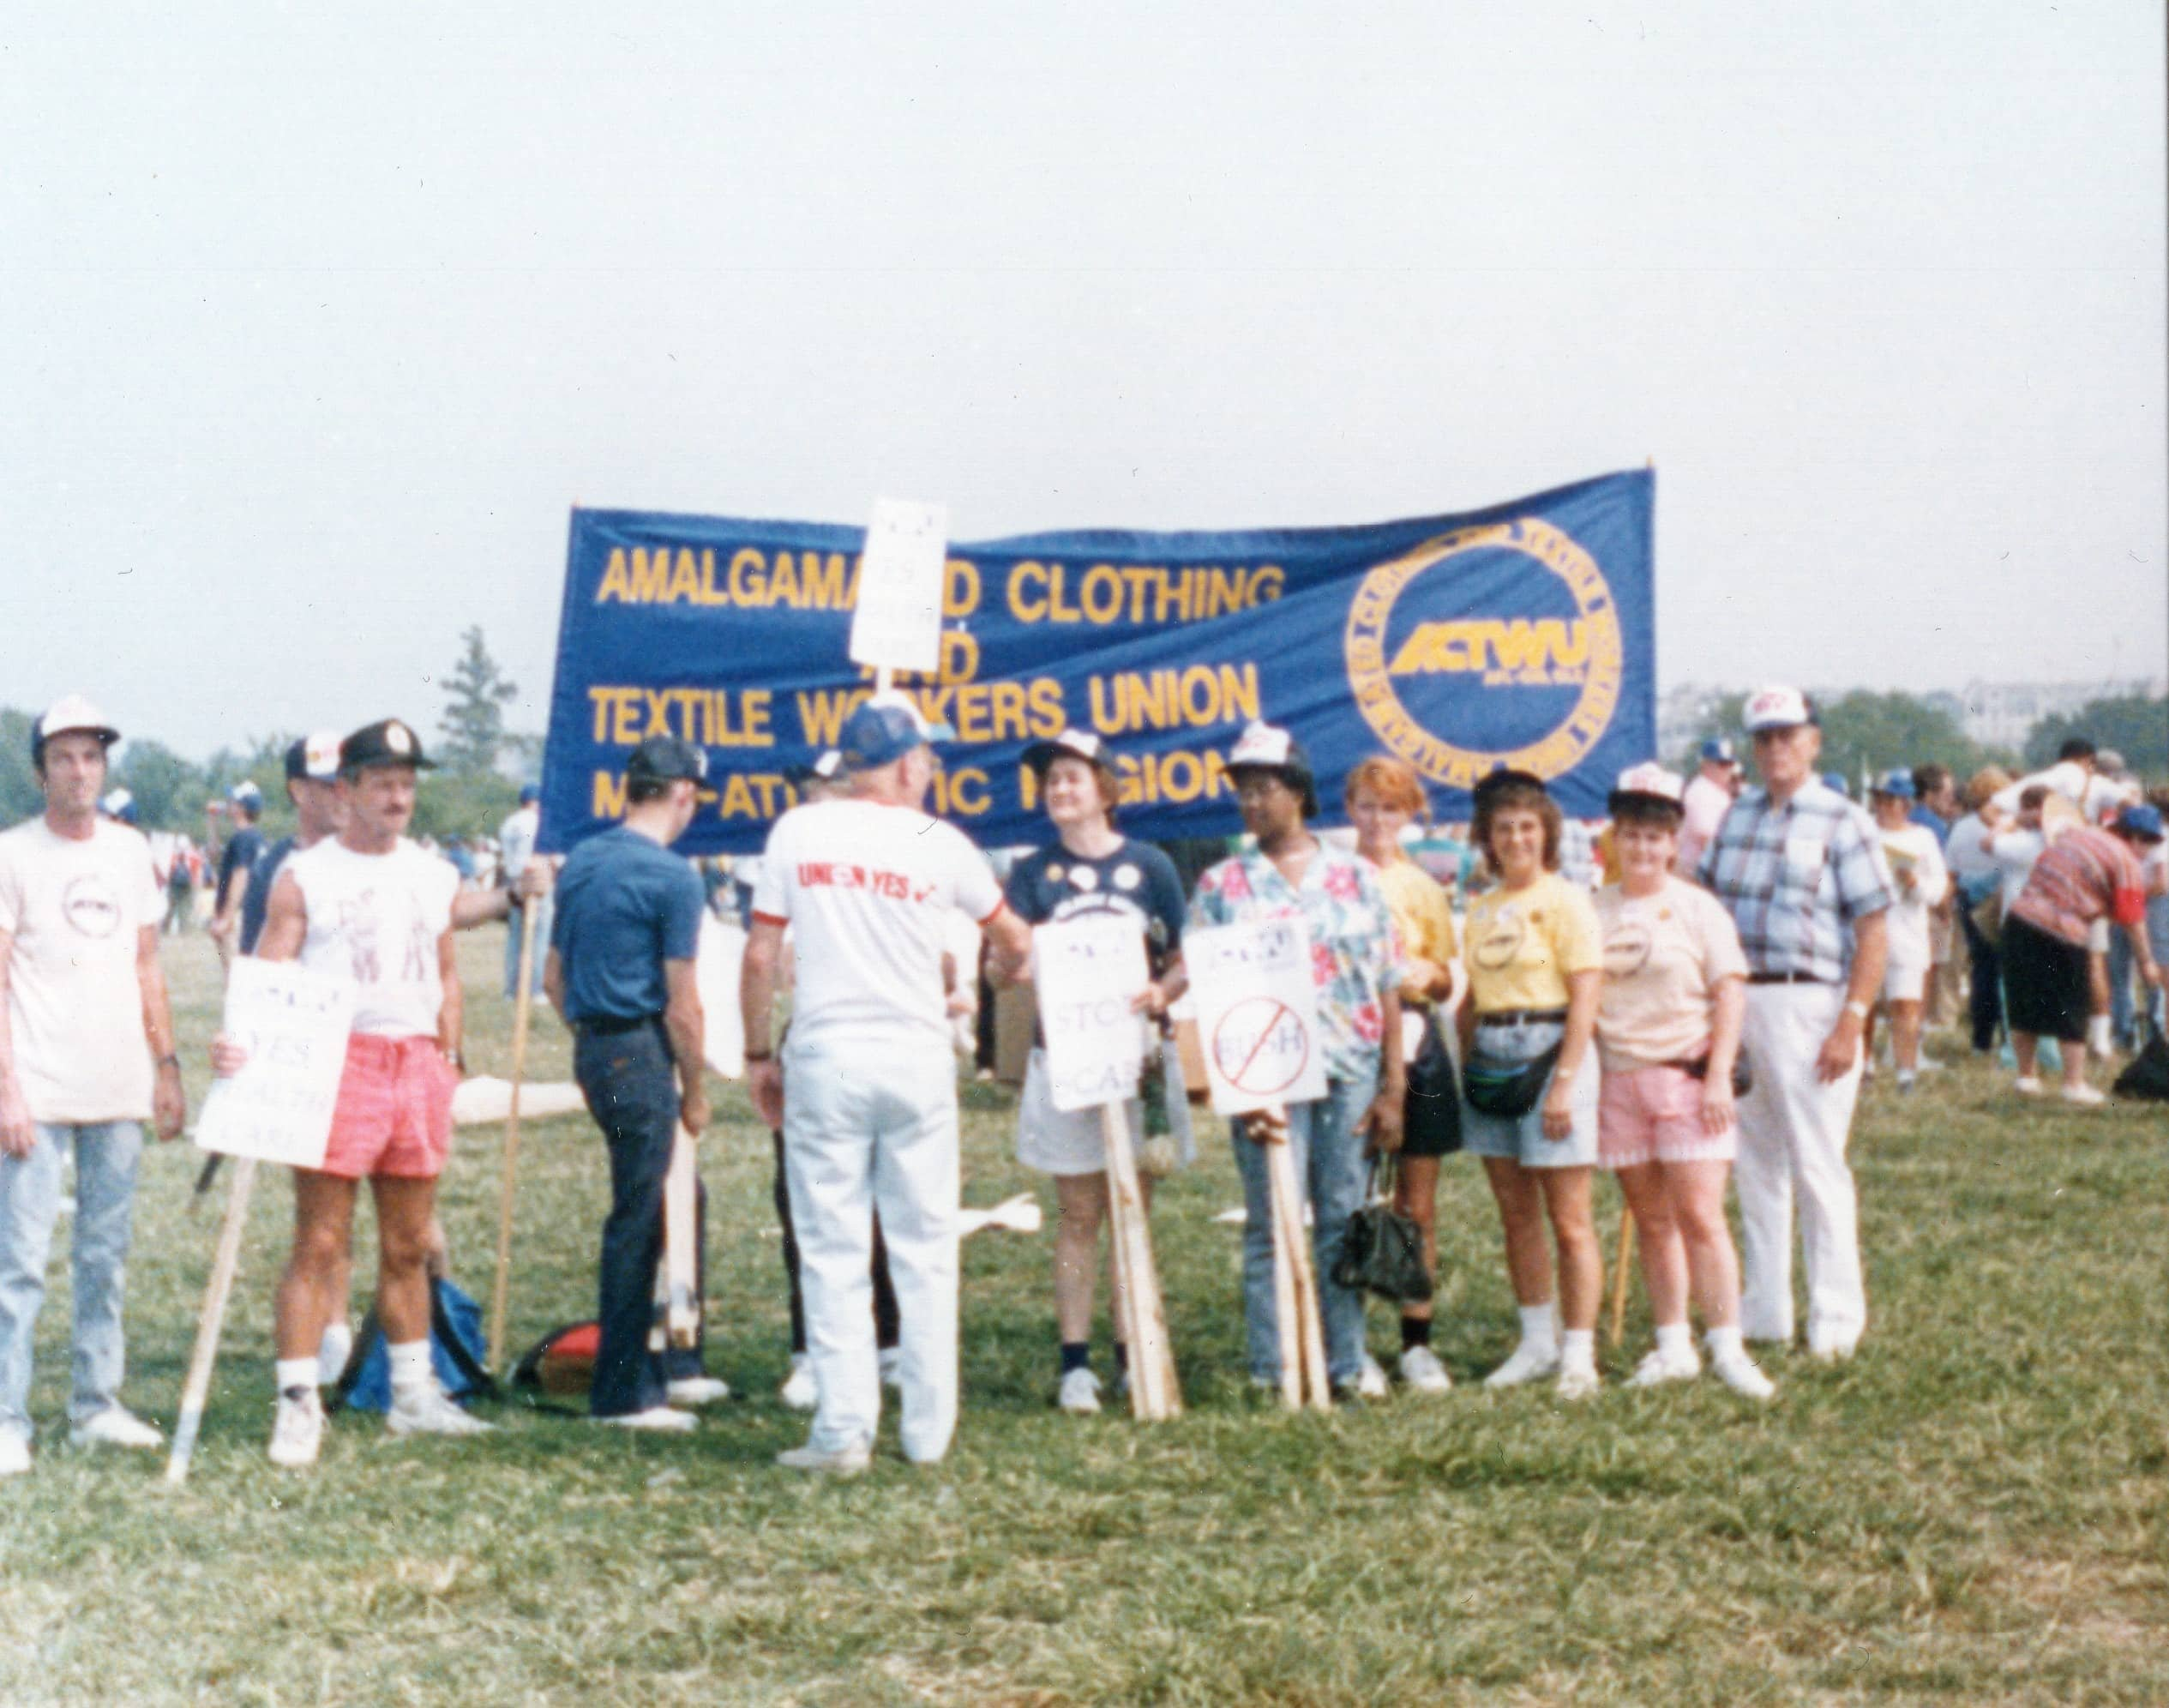 Amalgamated Clothing and Textile Workers Union (ACTWU) Protest, Washington, D.C., 1991